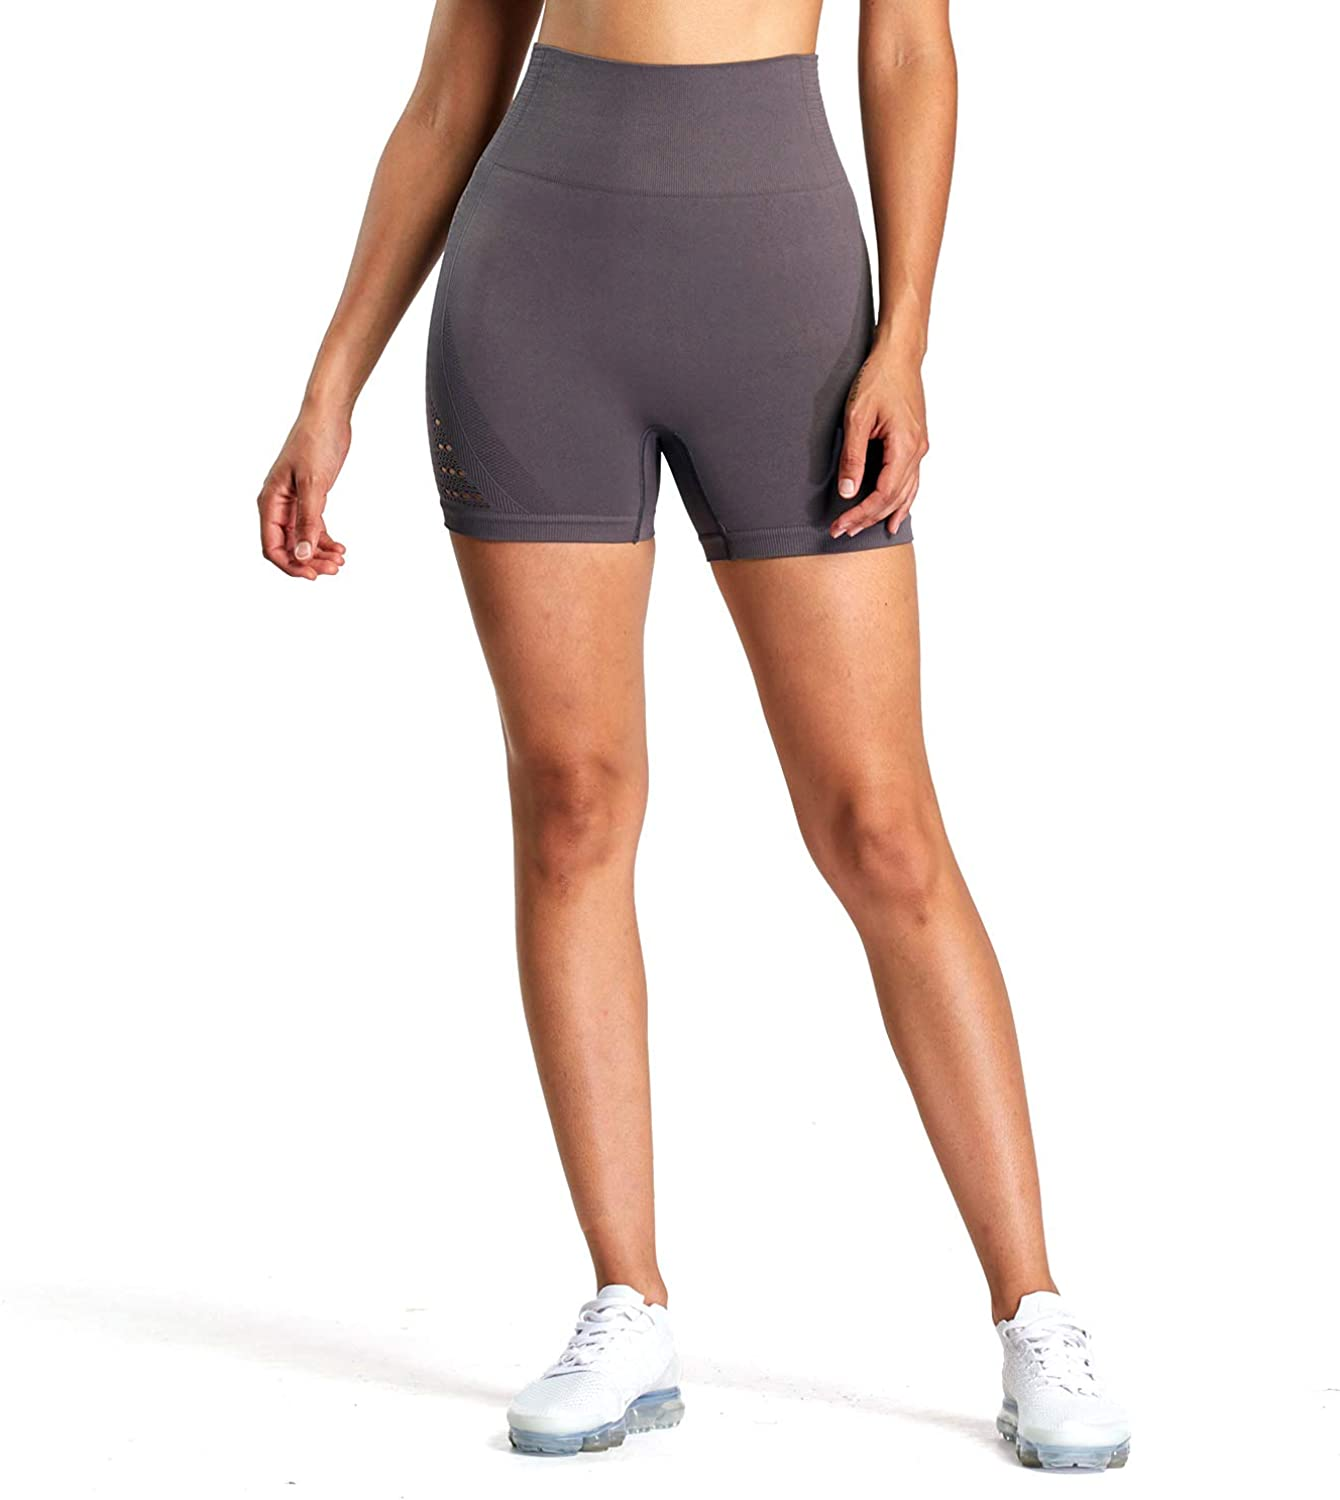 Aoxjox Womens High Waisted Workout Yoga Gym Energy Seamless Shorts